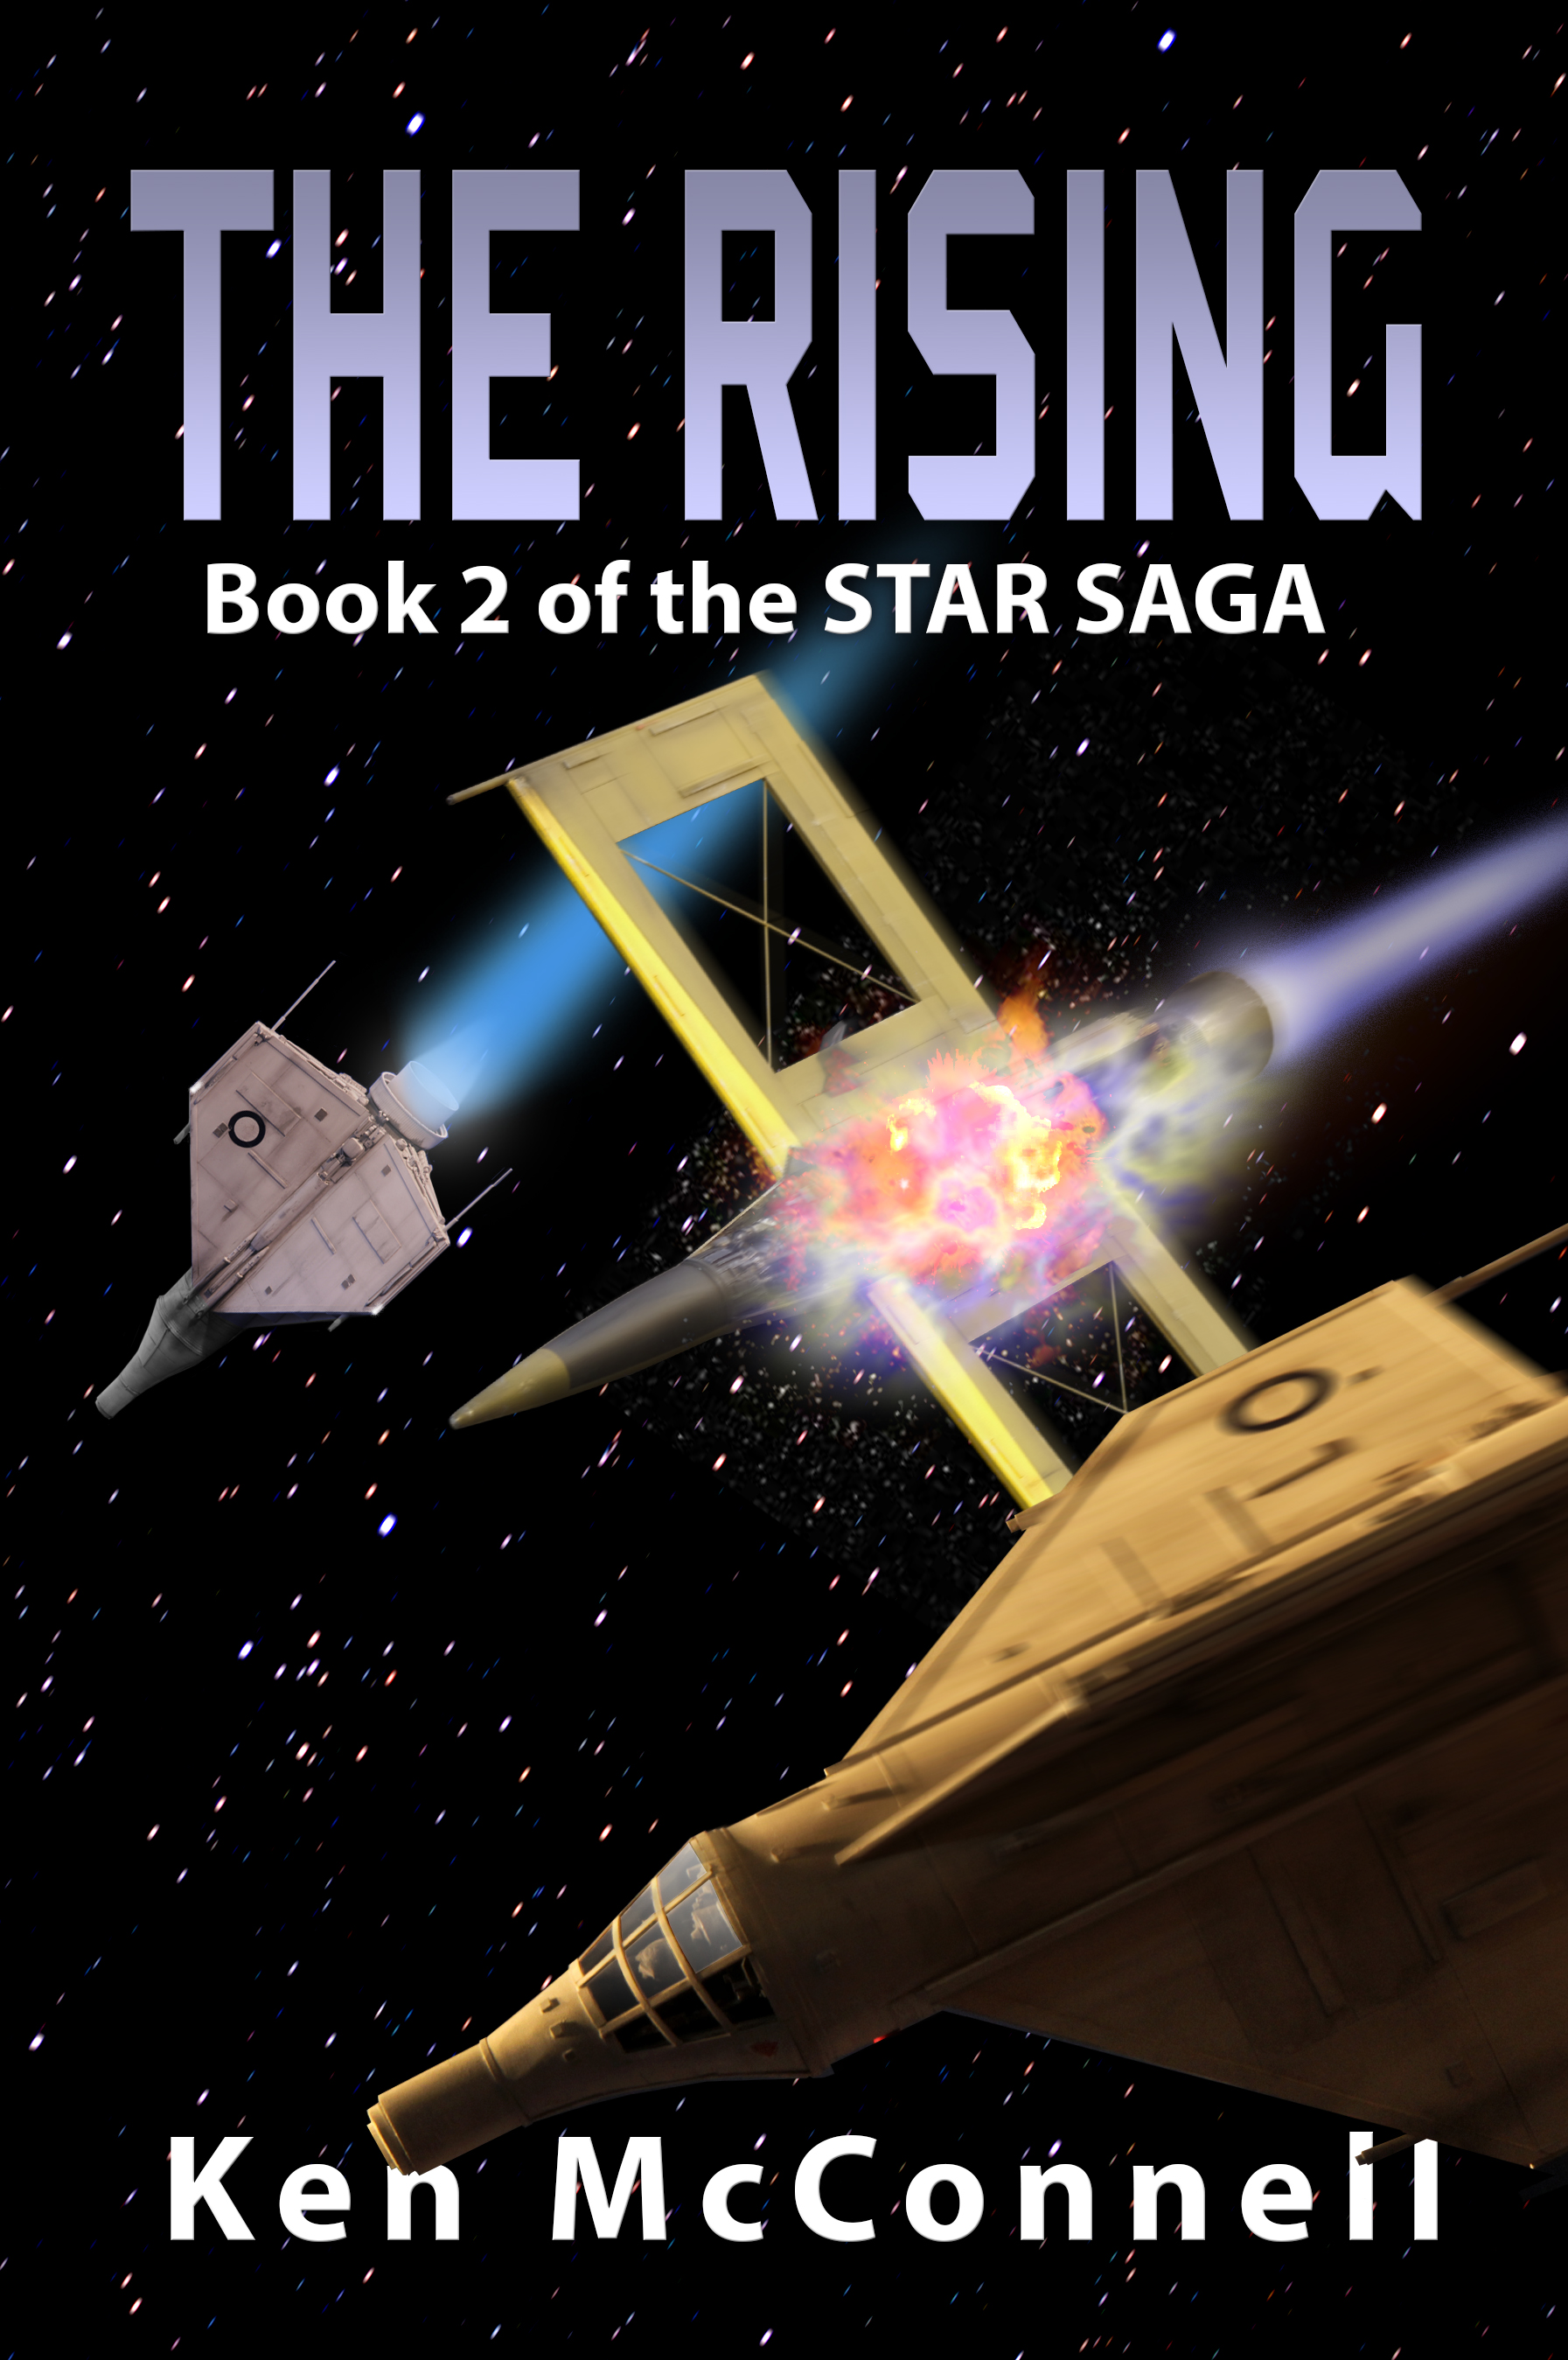 The Rising Cover 2-15-16